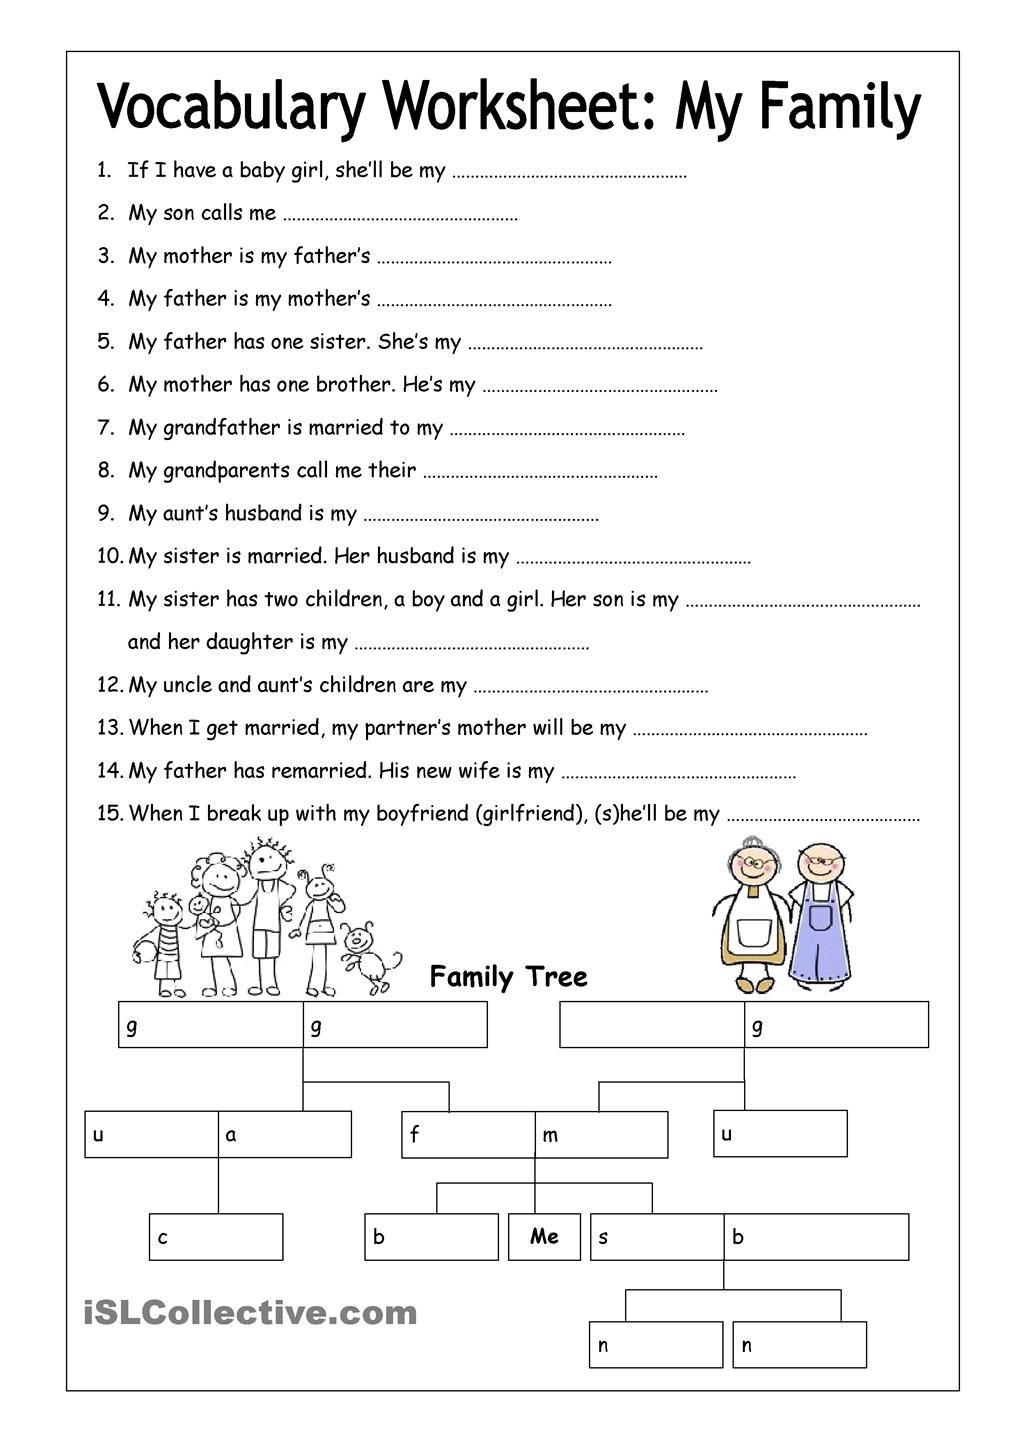 Vocabulary Worksheet - My Family (Medium) | English 6th grade ...